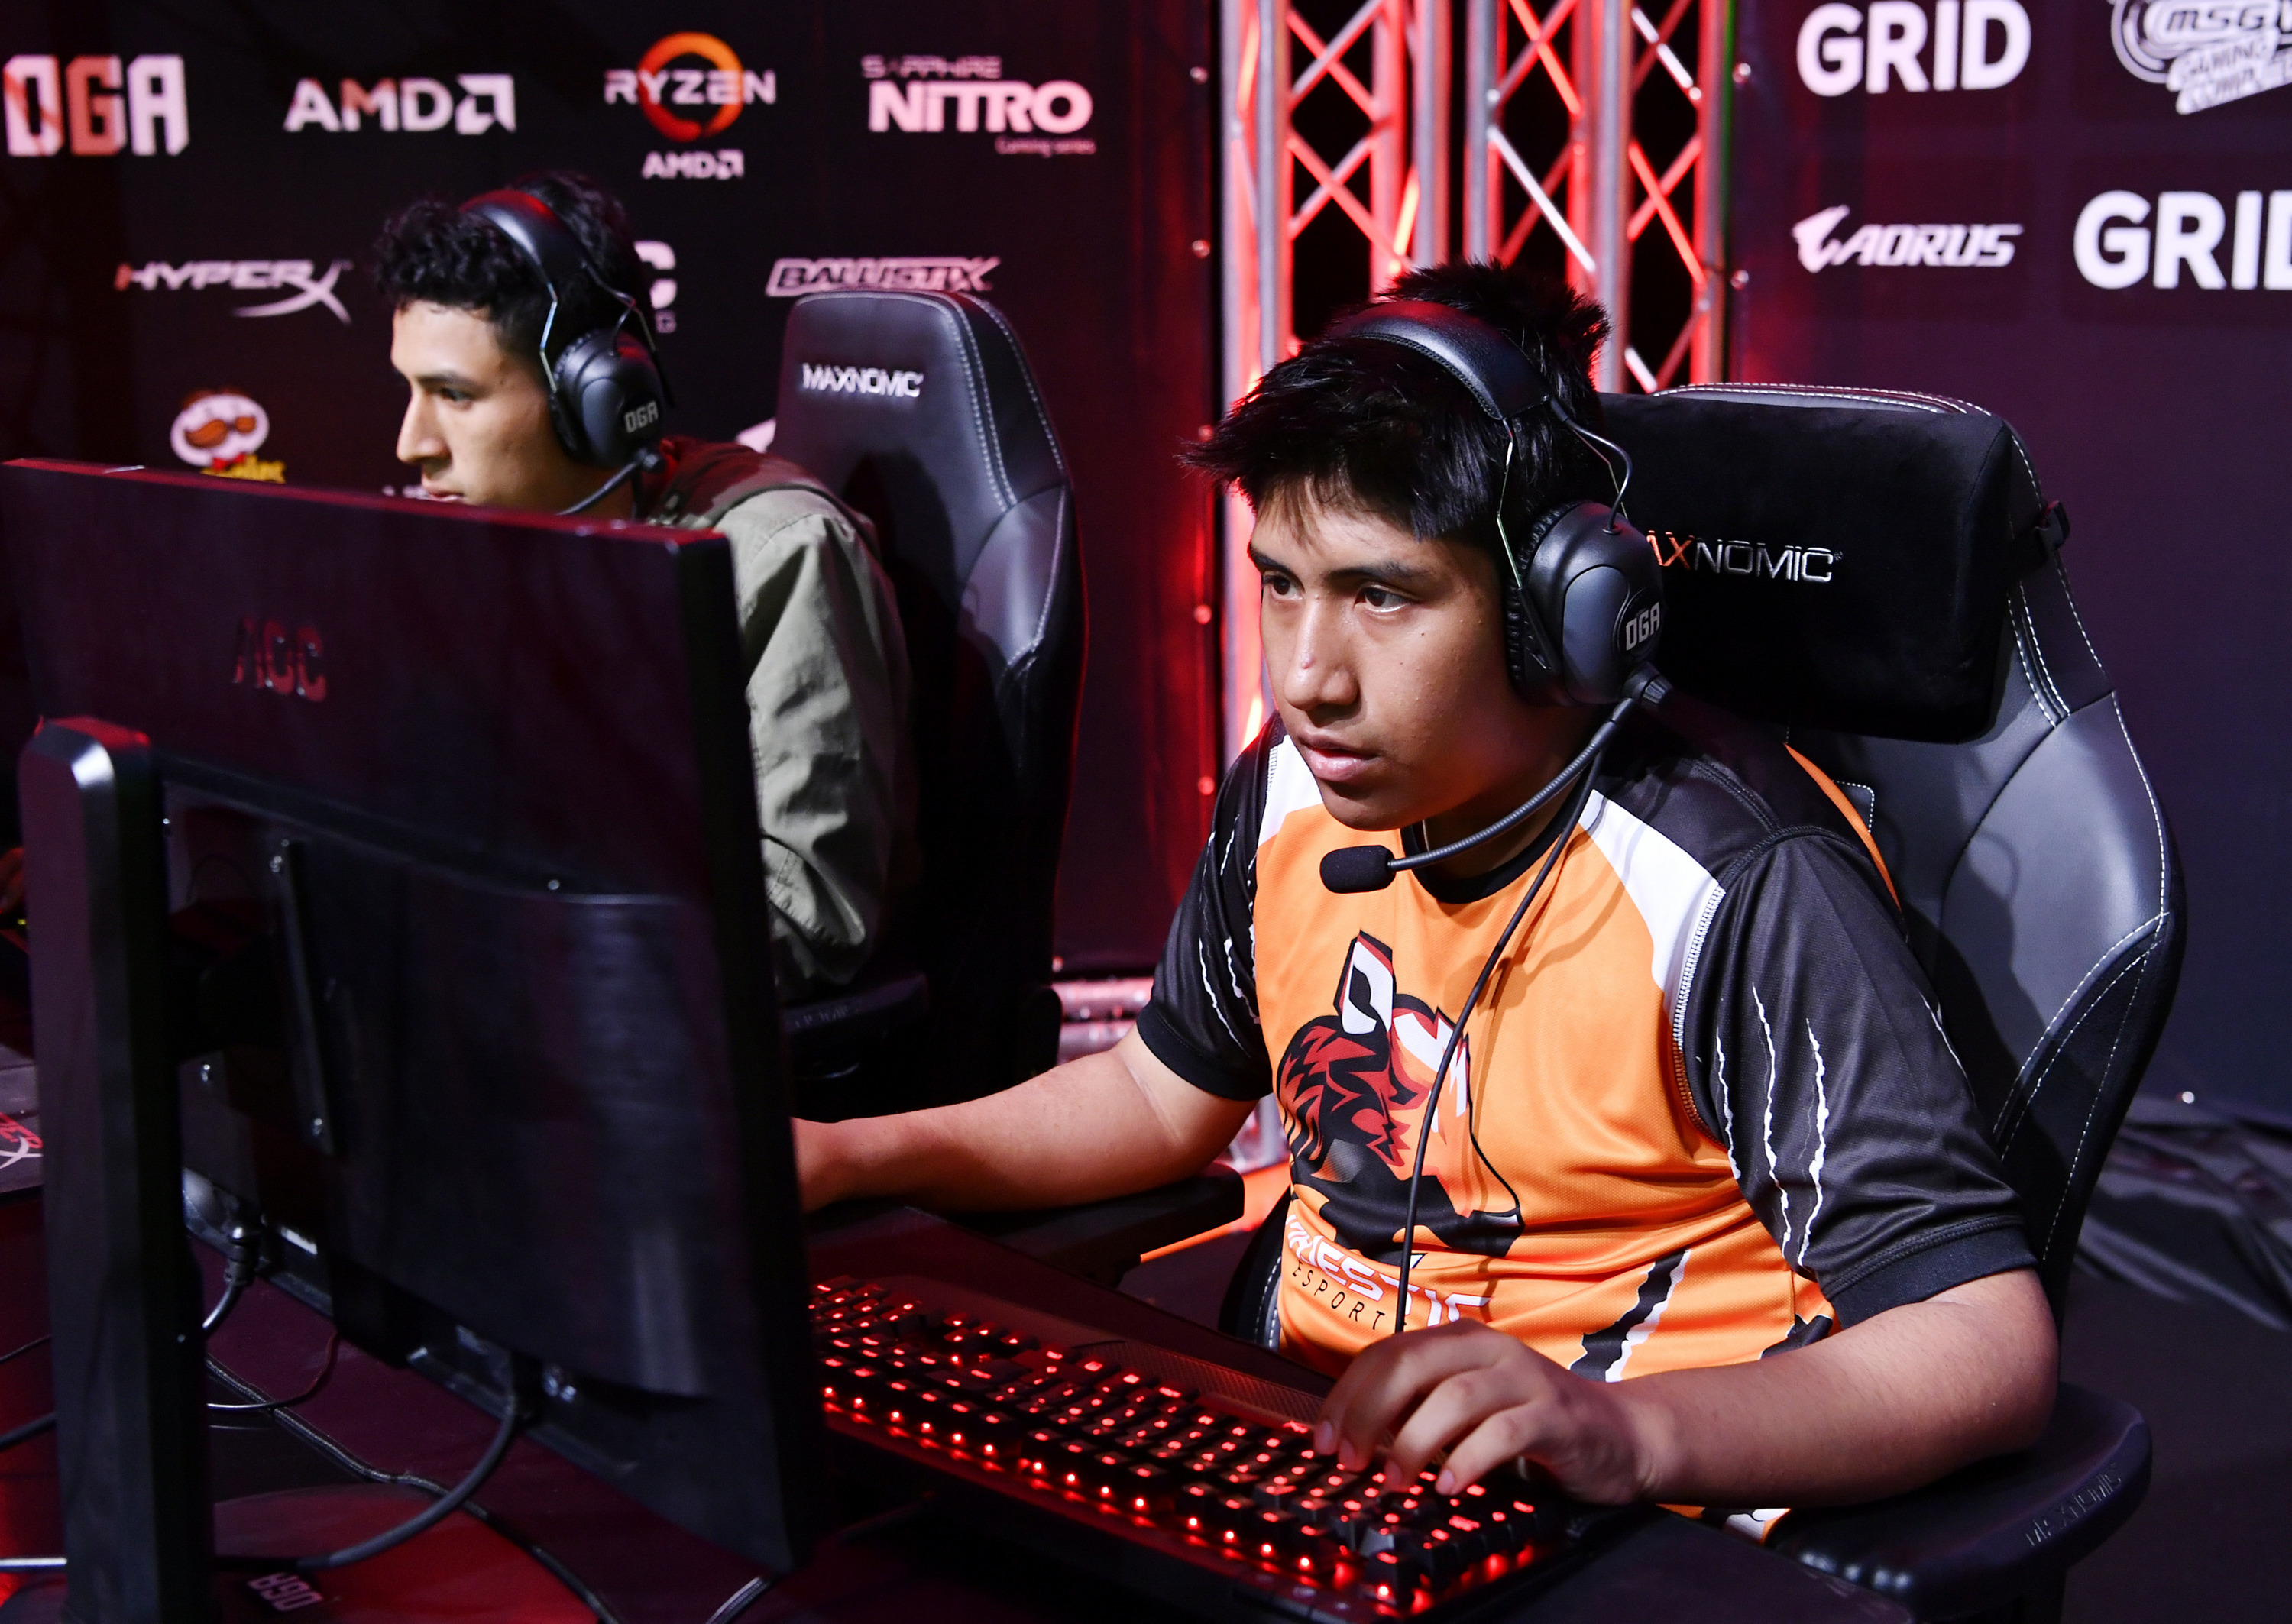 The list of participants for StarLadder ImbaTV Dota 2 Minor is closed